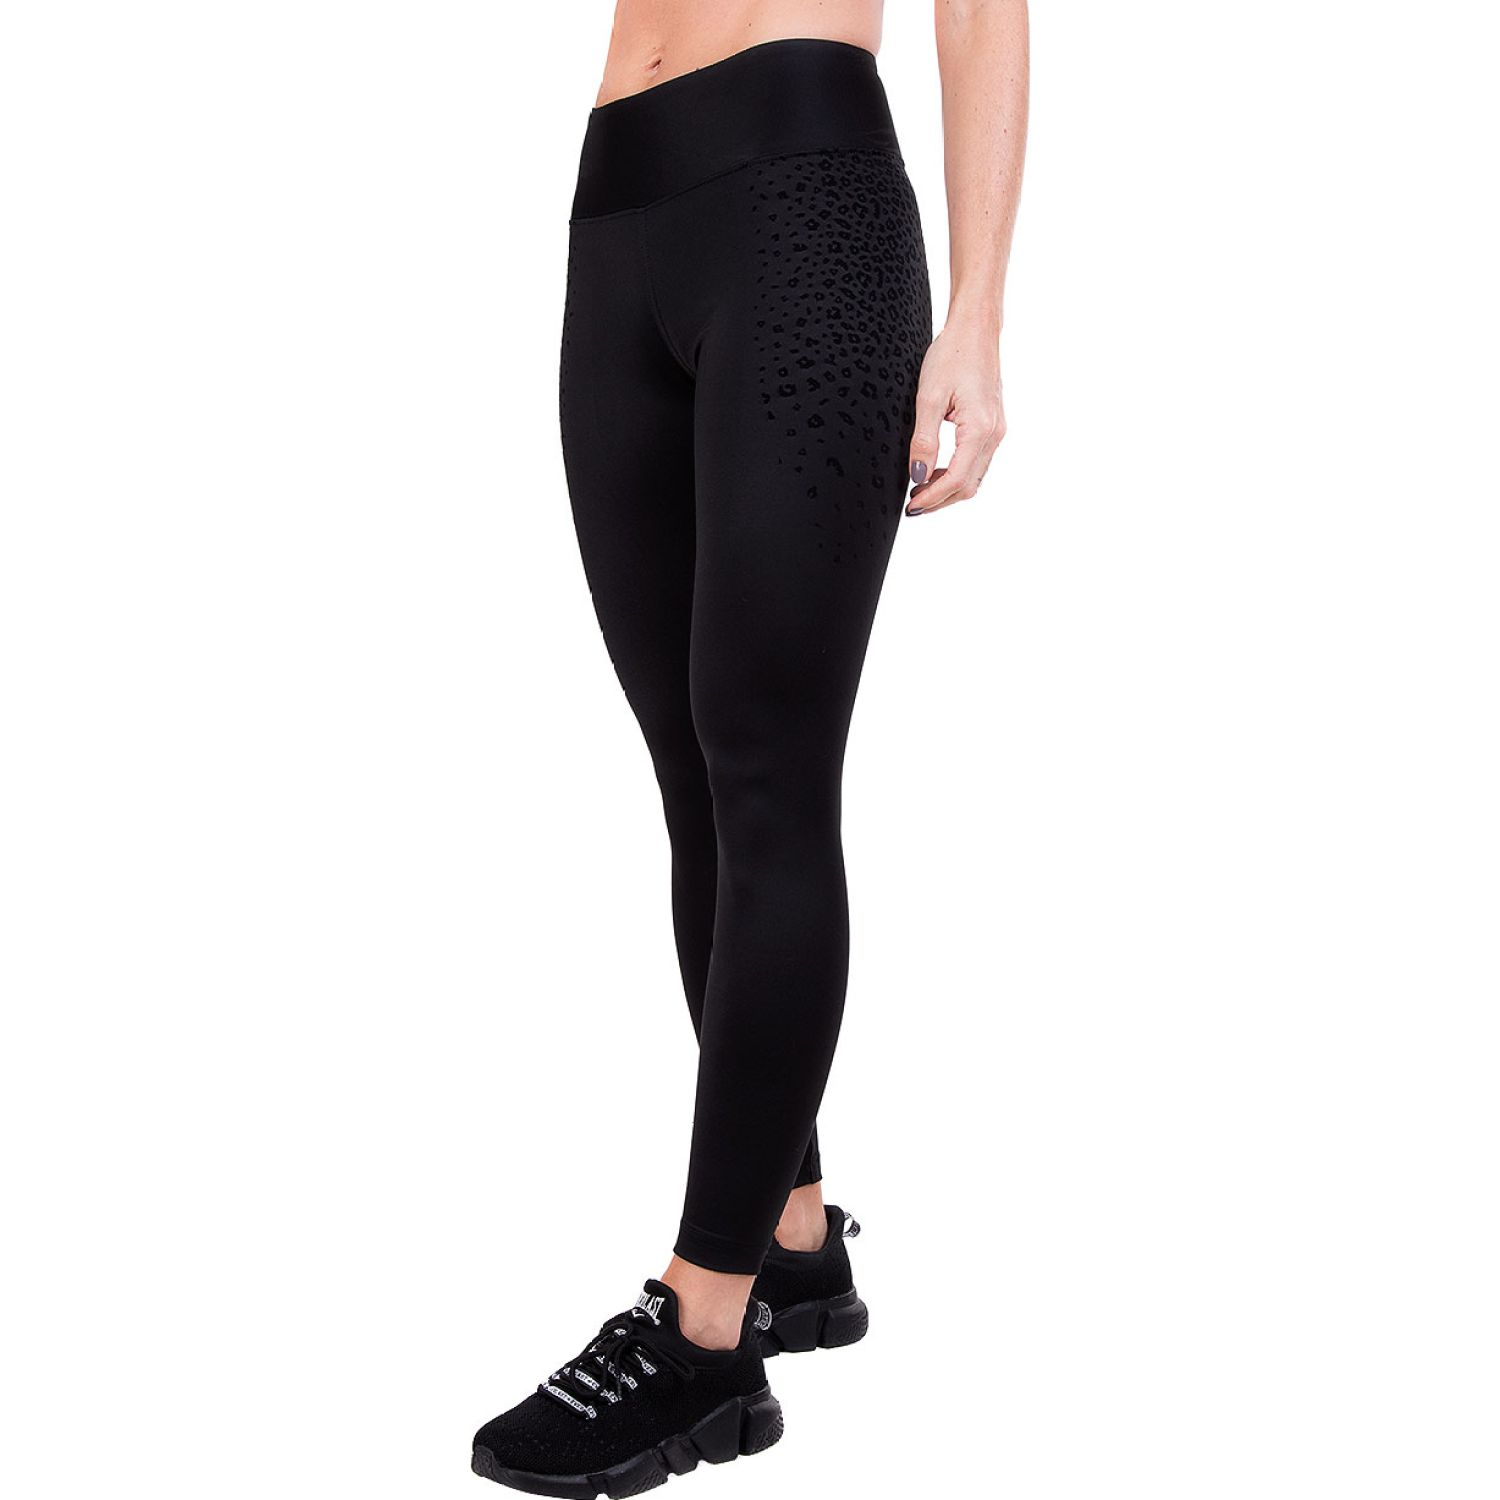 Everlast legging long trim charcoal Negro Leggings Deportivos